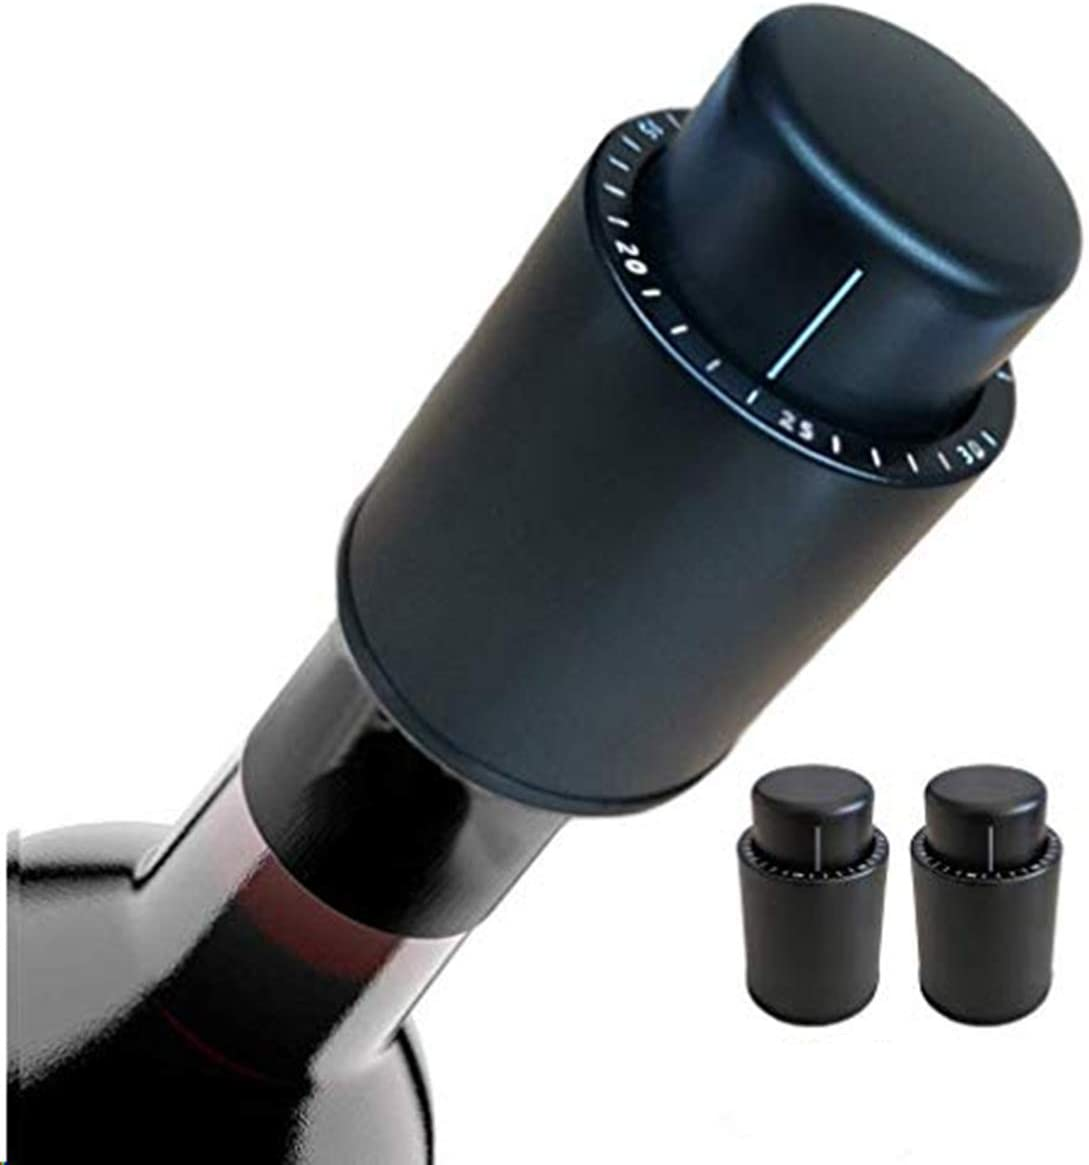 Wine Bottle Stopper TOONEV Vacuum Fr Pump Saver Keeps Super beauty product restock quality top New item